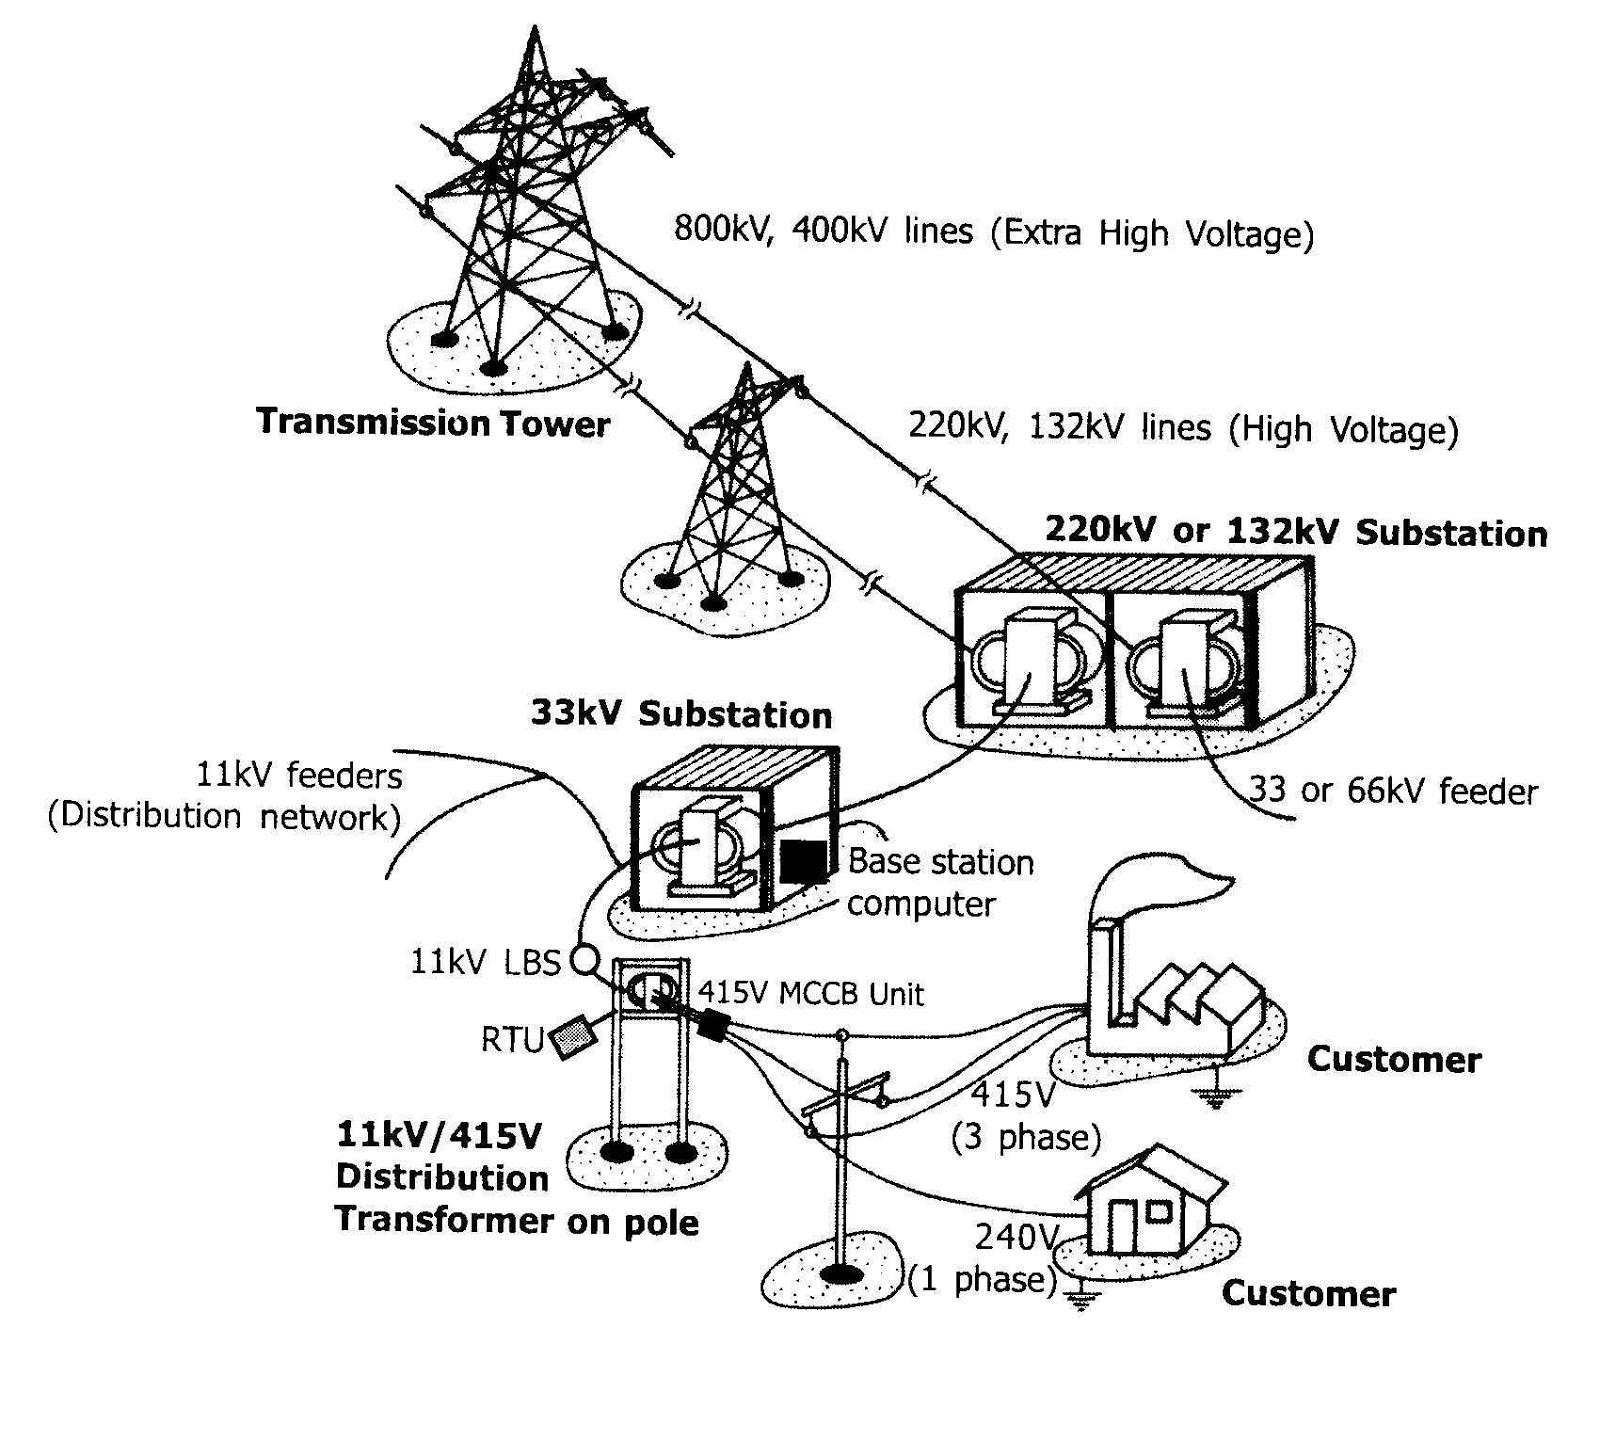 hight resolution of typical power transmission and distribution scenario